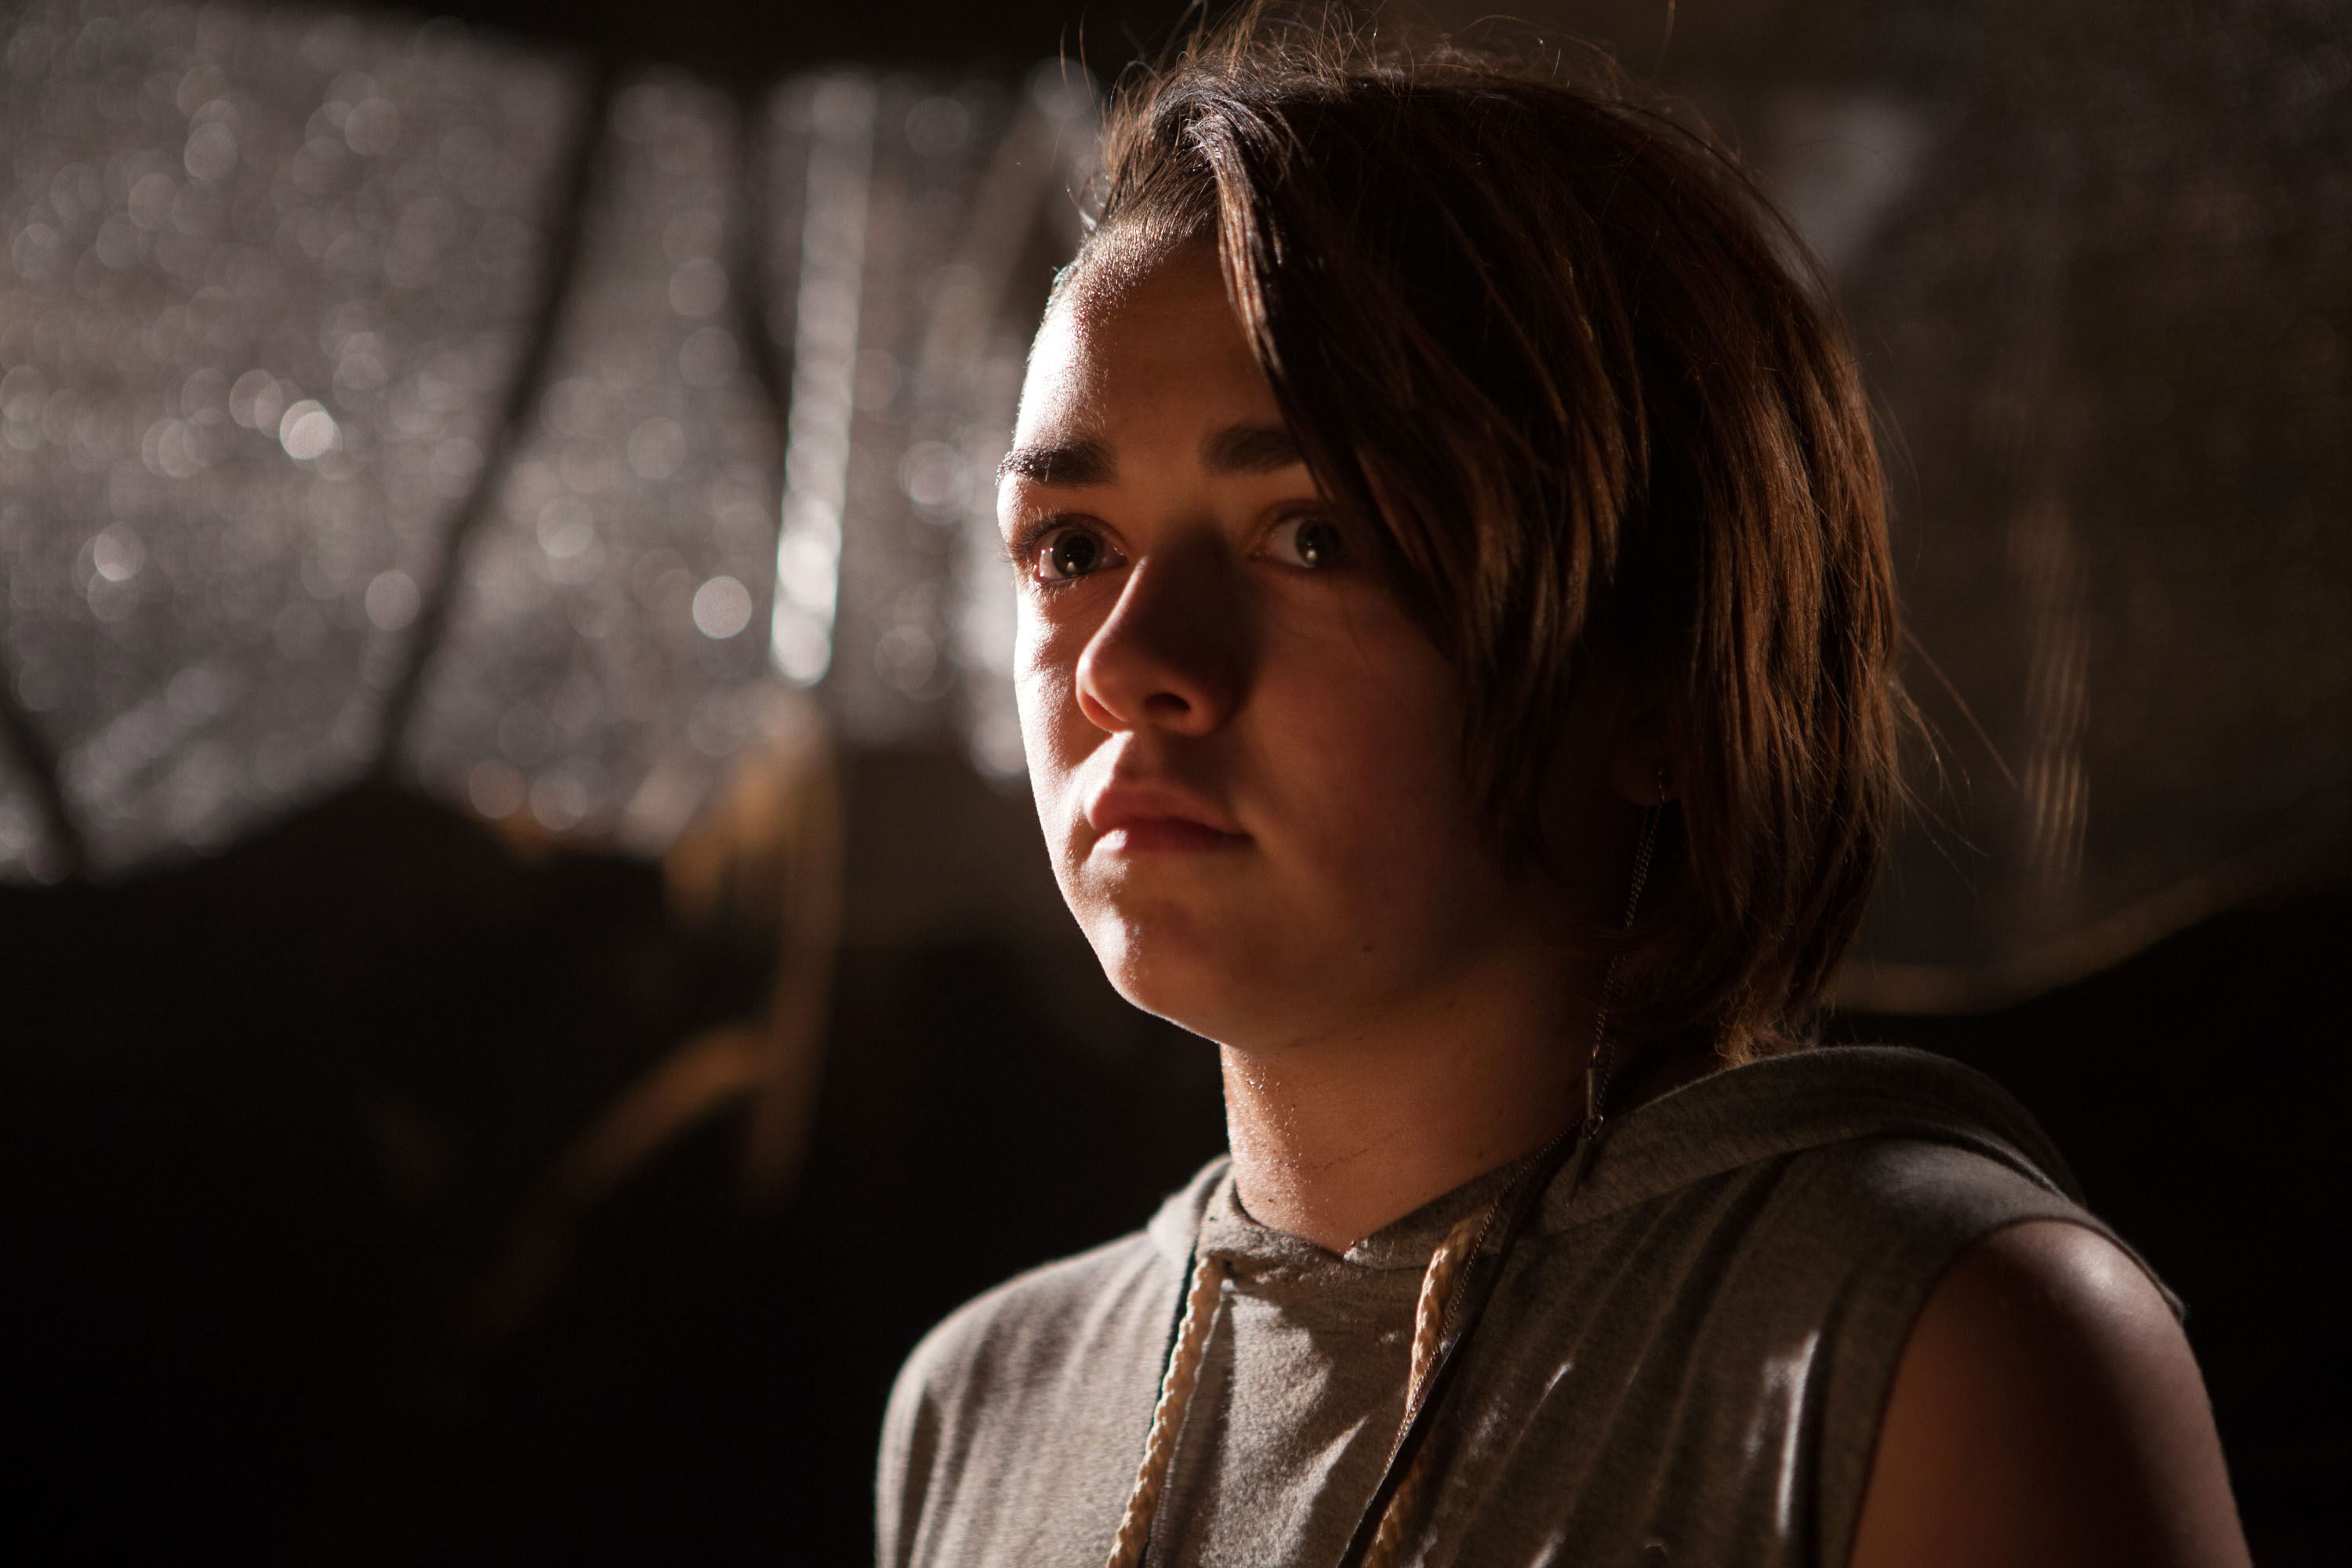 Horror Hd Wallpapers For Laptop 14 Hd Maisie Williams Wallpapers